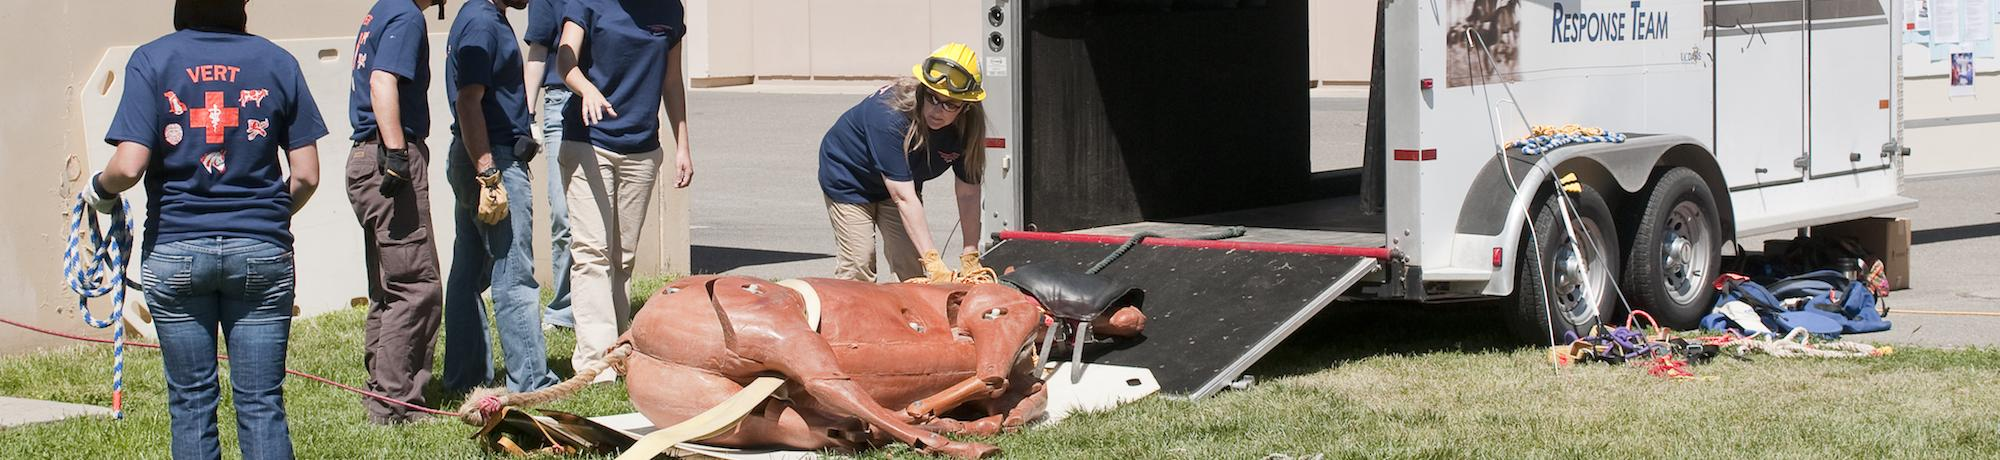 The UCD Veterinary Emergency Response Team (VERT) starts their large animal rescue demonstration at the UC Davis 2009 Picnic Day celebration, using a plastic horse model to simulate a horse trapped in a horse trailer. The team specializes in large animal rescue. The demonstration was held at the William R. Pritchard Veterinary Medical Teaching Hospital at the University of California Davis School of Veterinary Medicine.